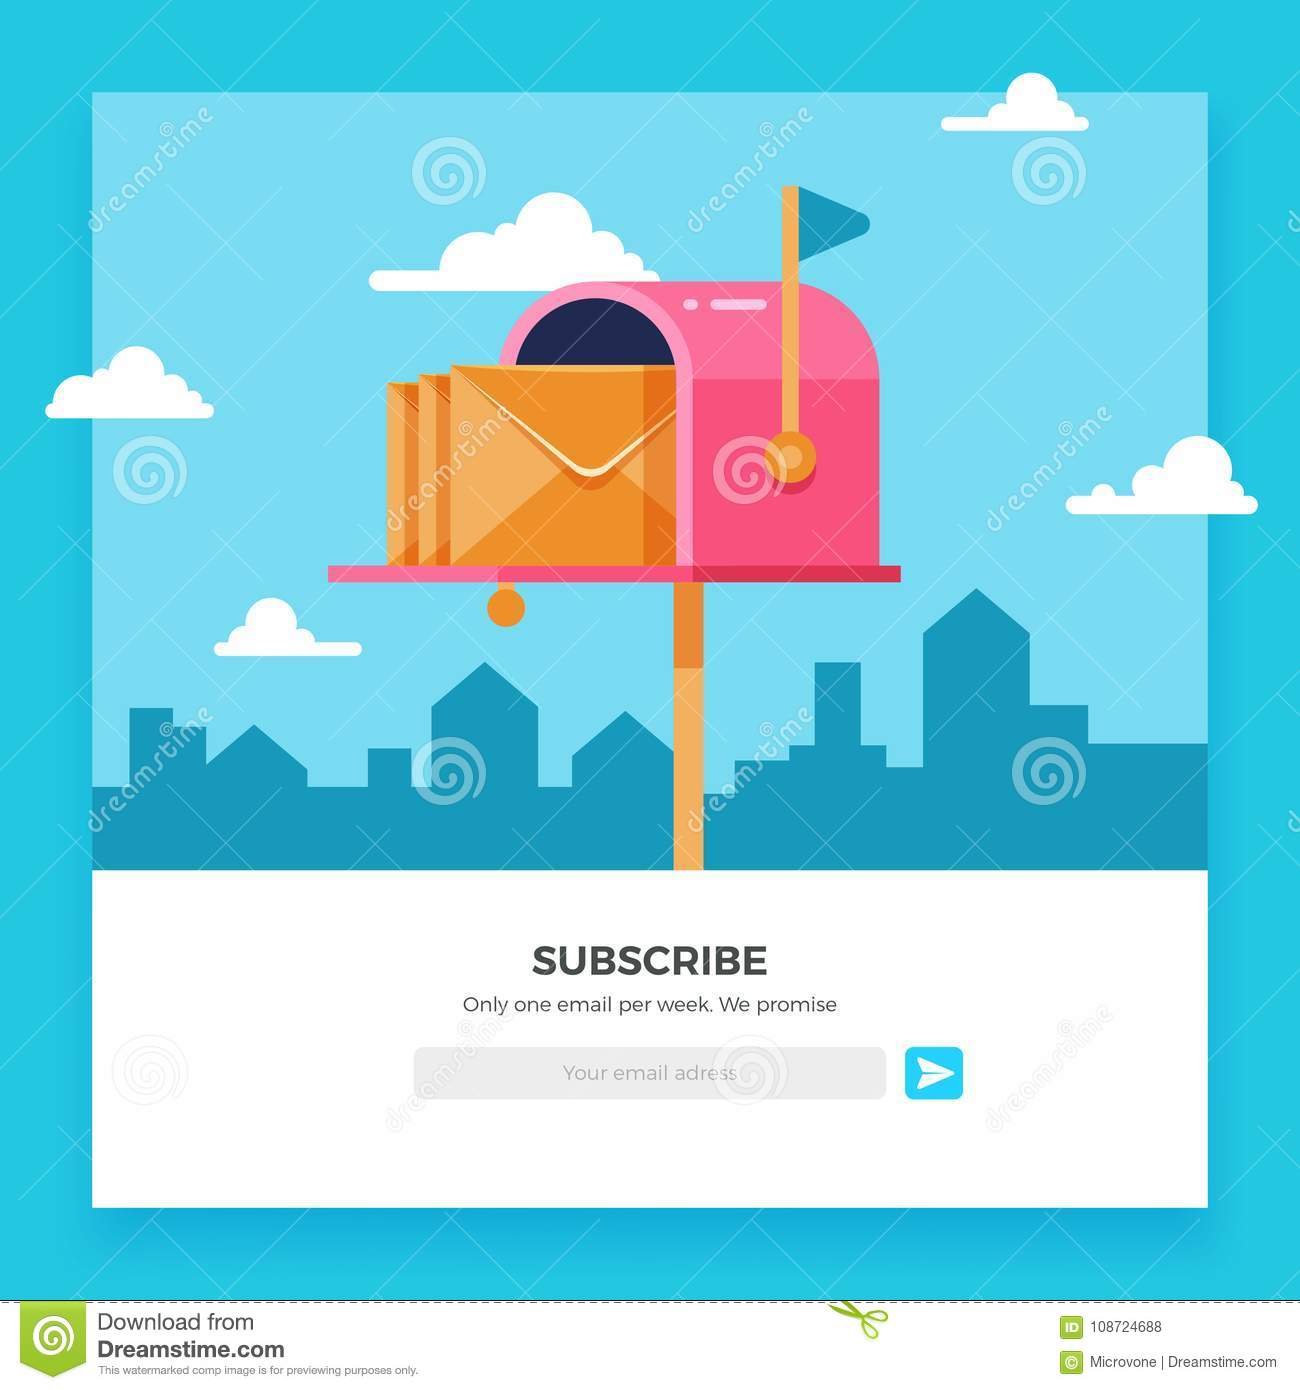 Email Subscribe Online Newsletter Vector Template With Mailbox And - Online envelope template